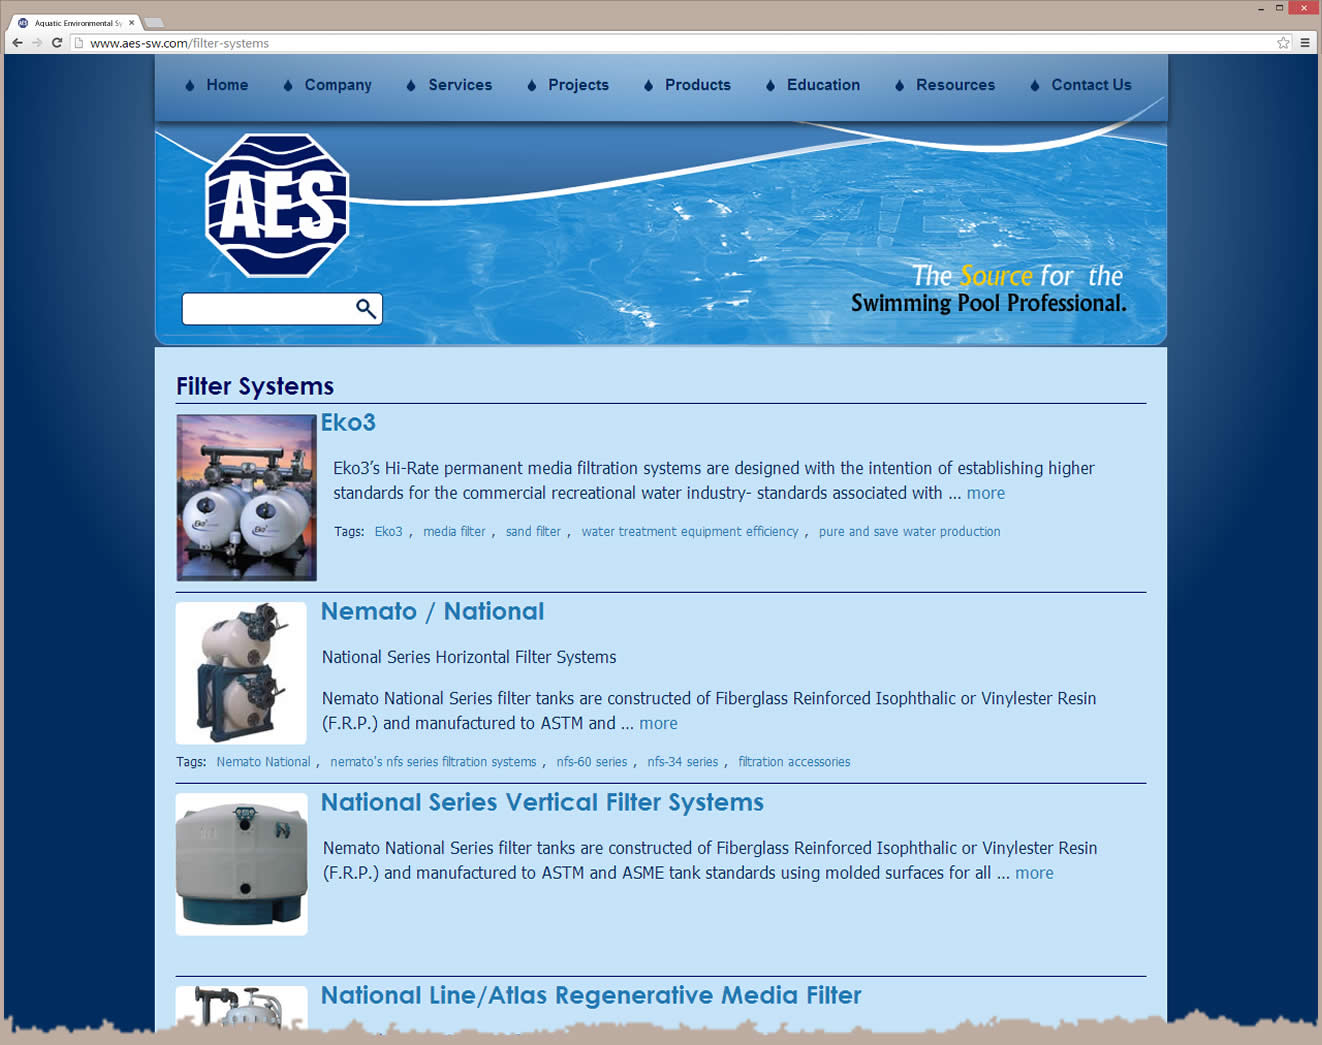 AES Products